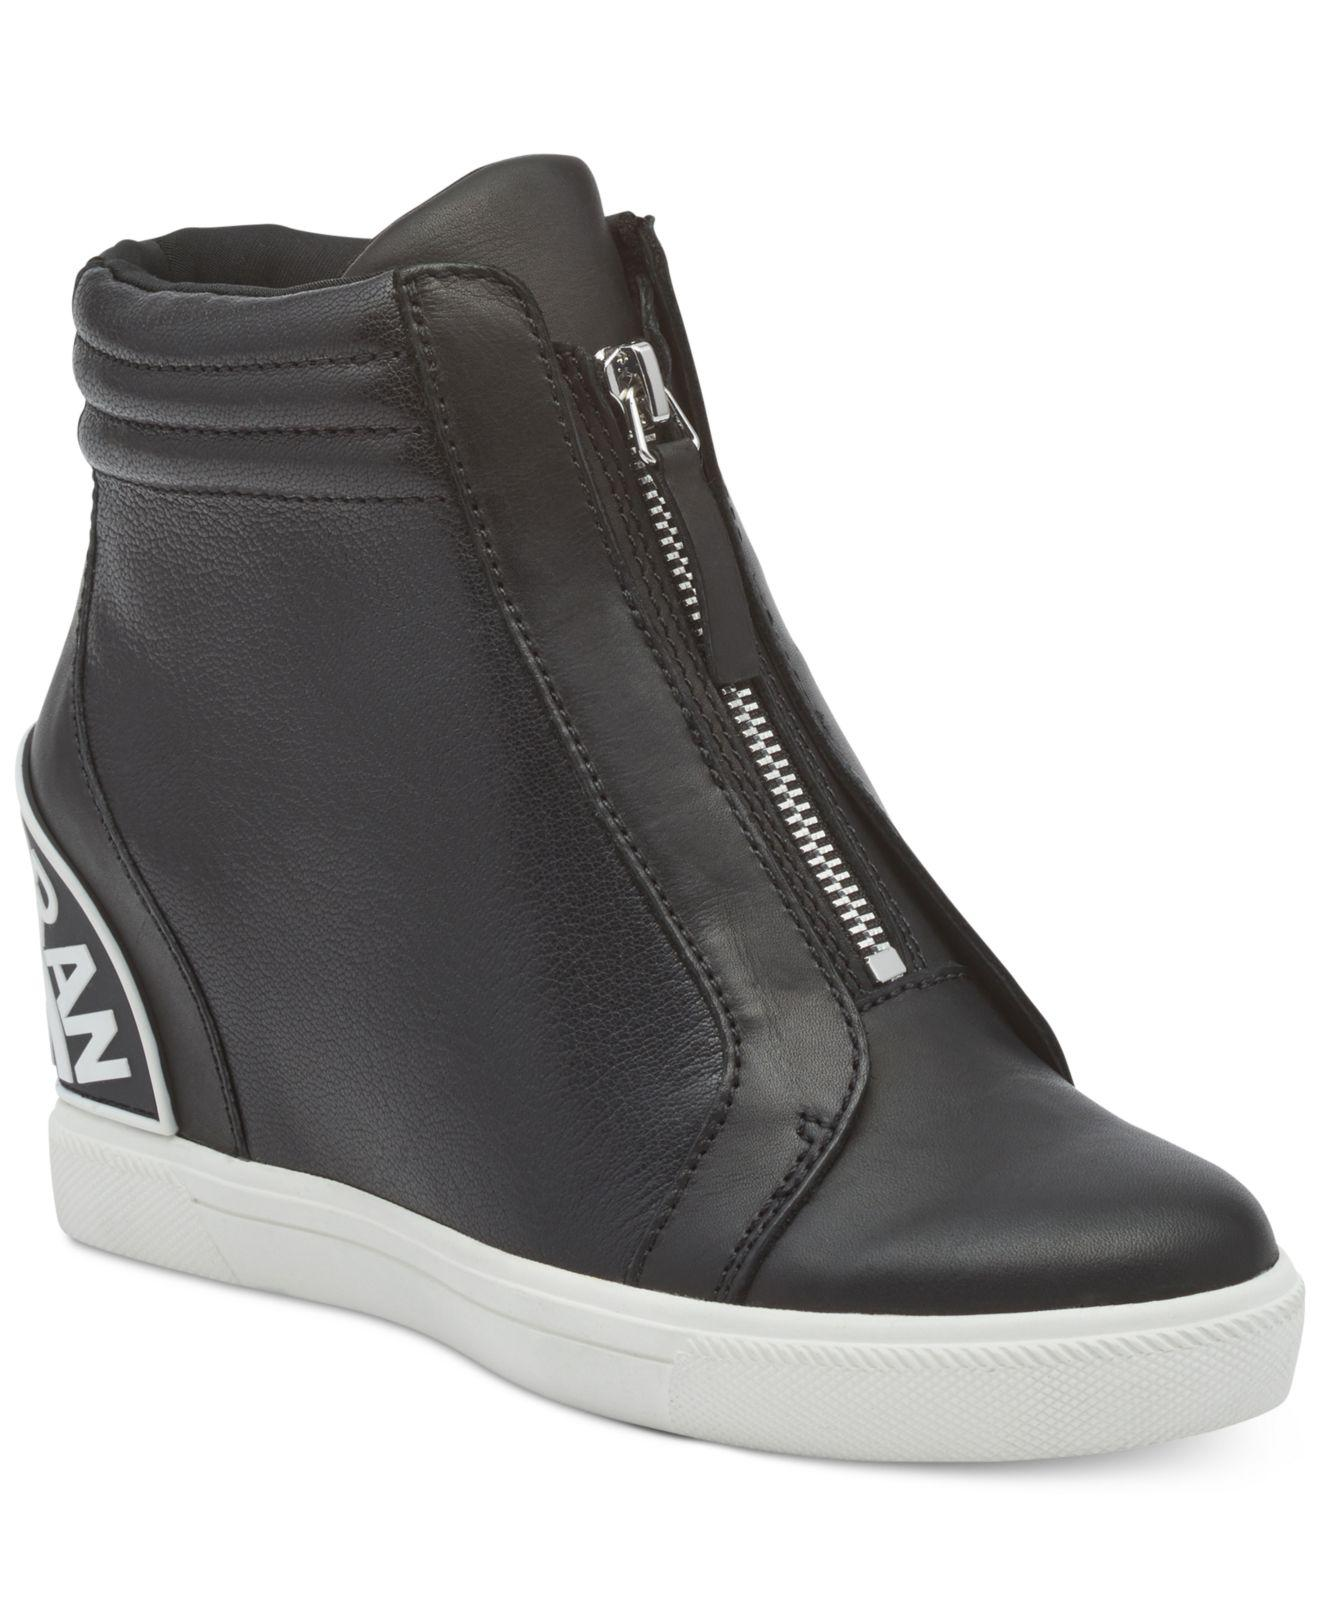 706e8a329540 Lyst - DKNY Connie Slip On Wedge Trainers in Black